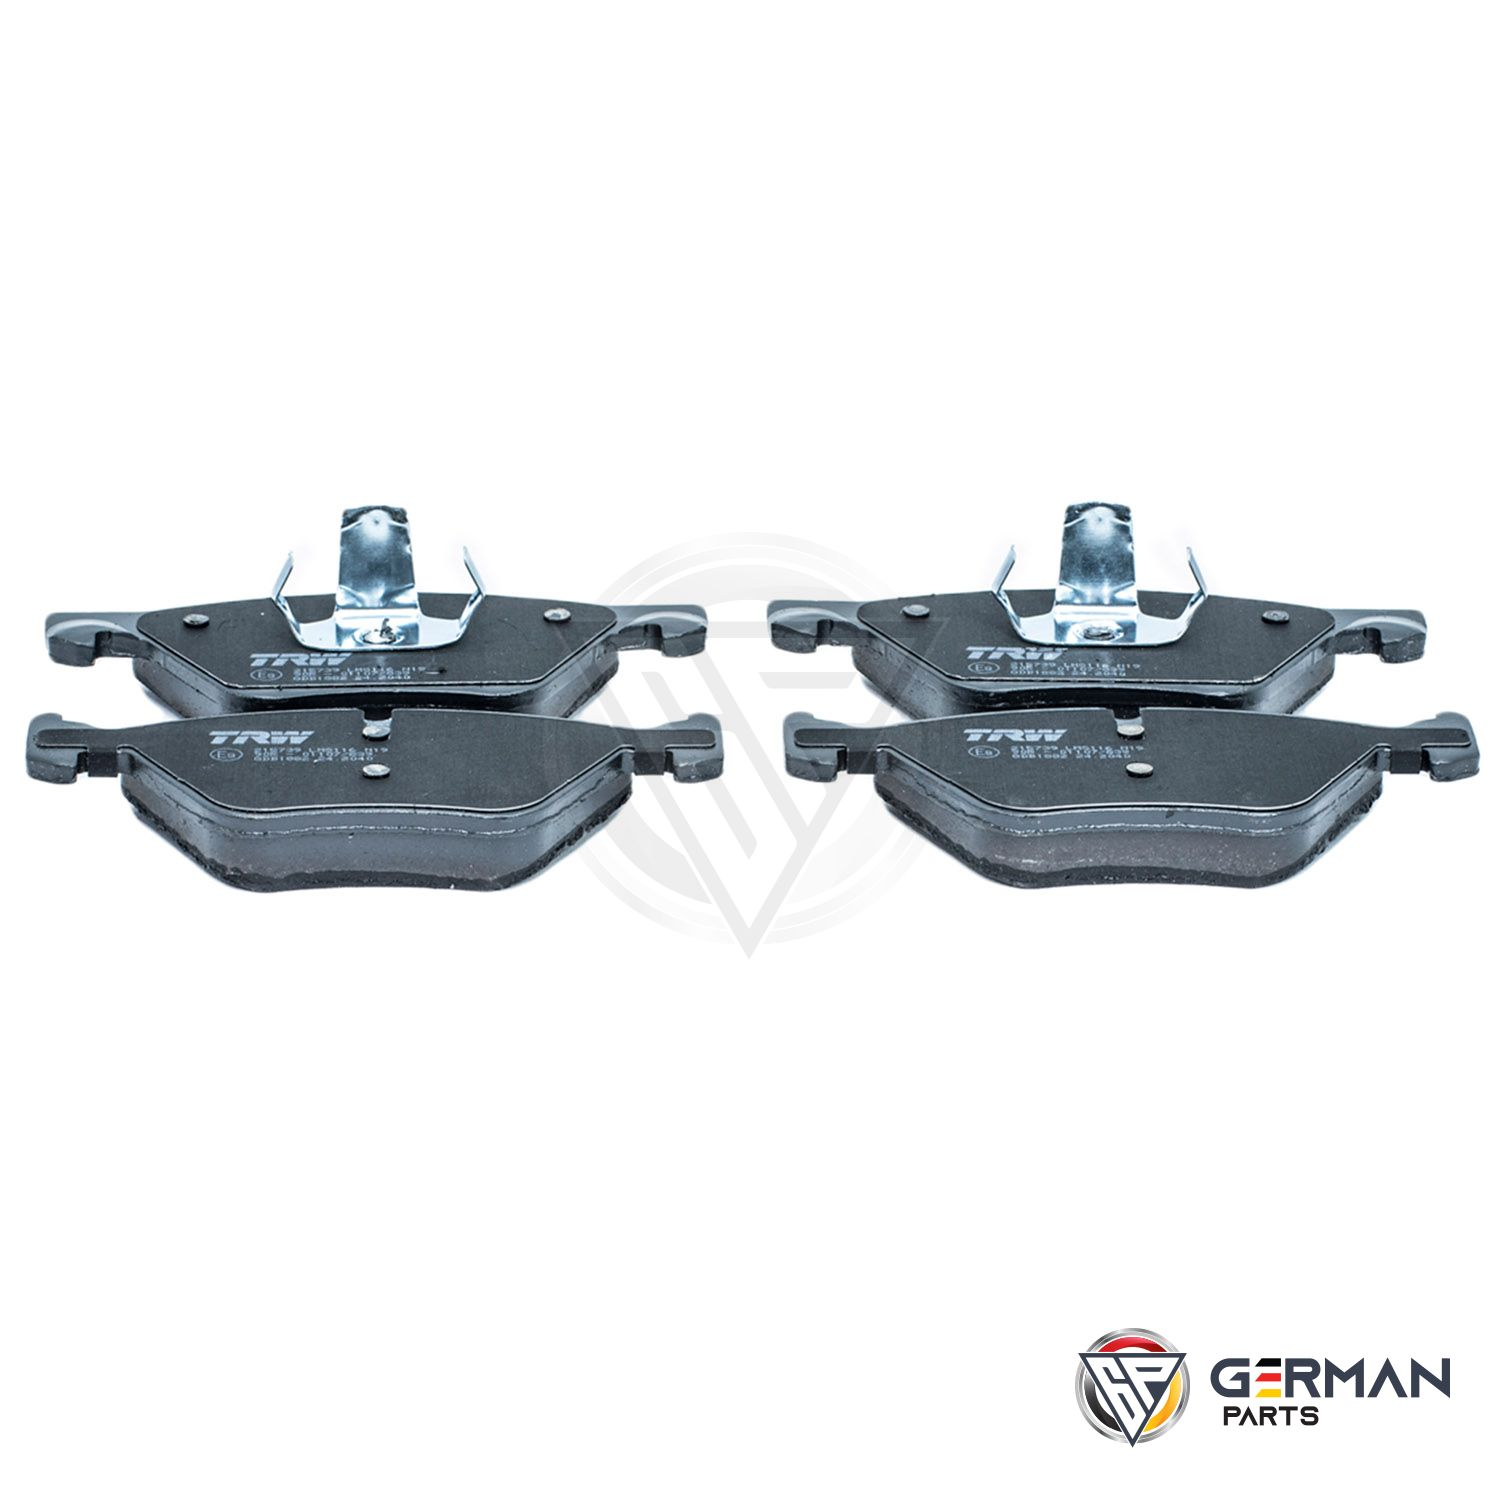 Buy TRW Front Brake Pad Set 34116858047 - German Parts